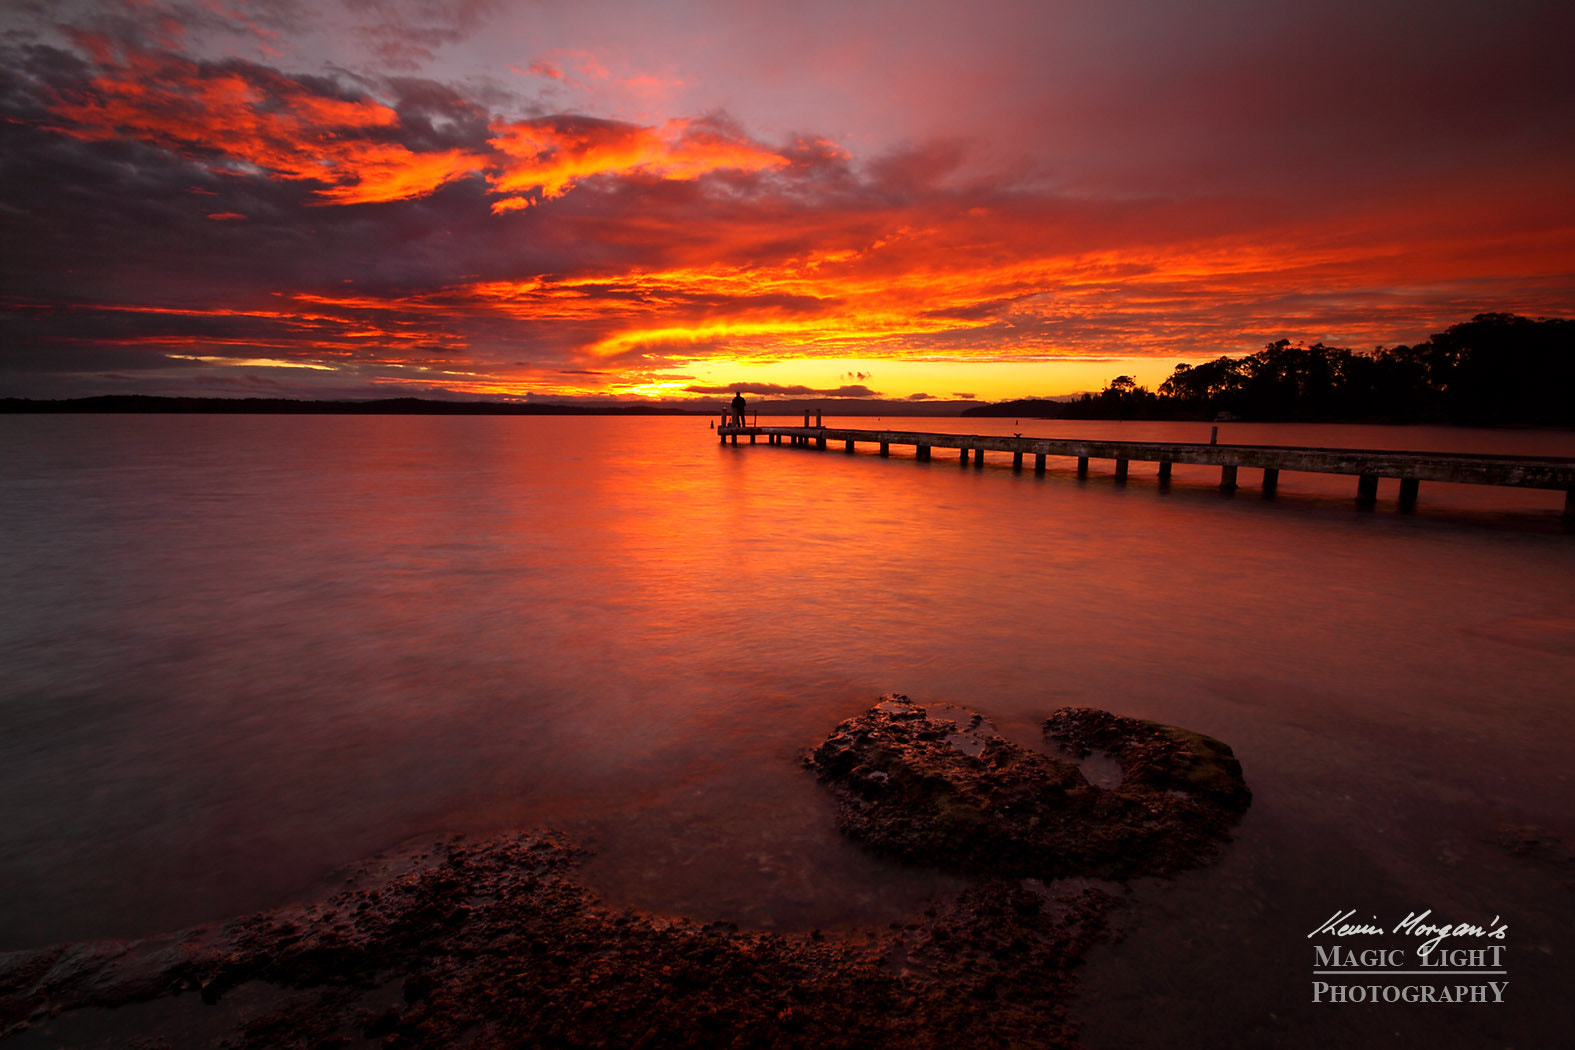 Photograph Rafferty's Sunset 2 by Kevin Morgan on 500px